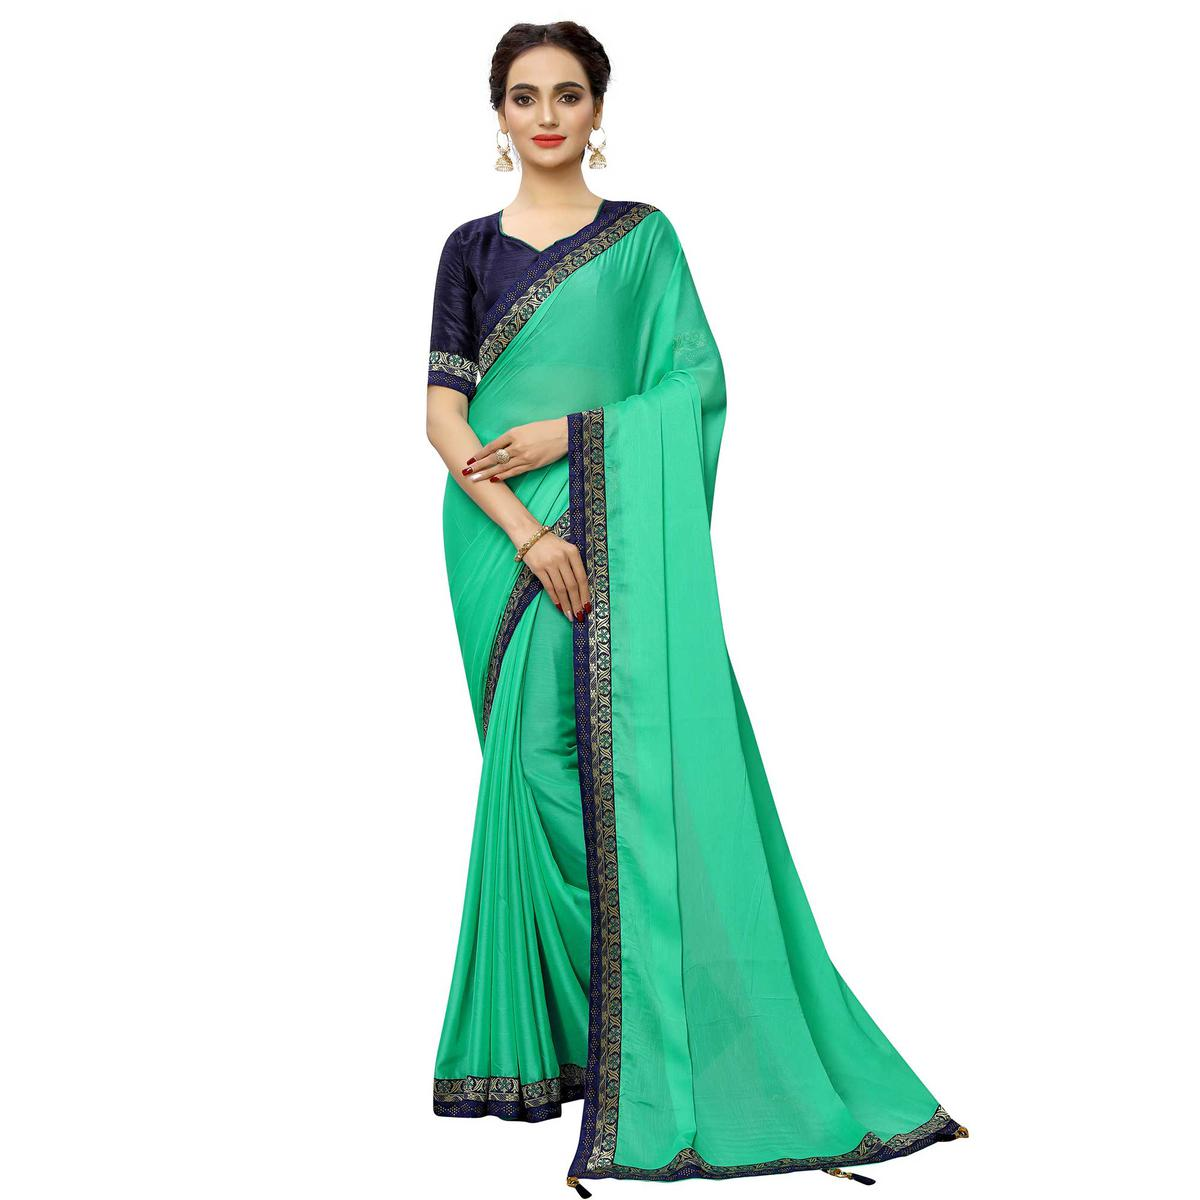 Gleaming Turquoise Green Colored Party Wear Printed Georgette Saree